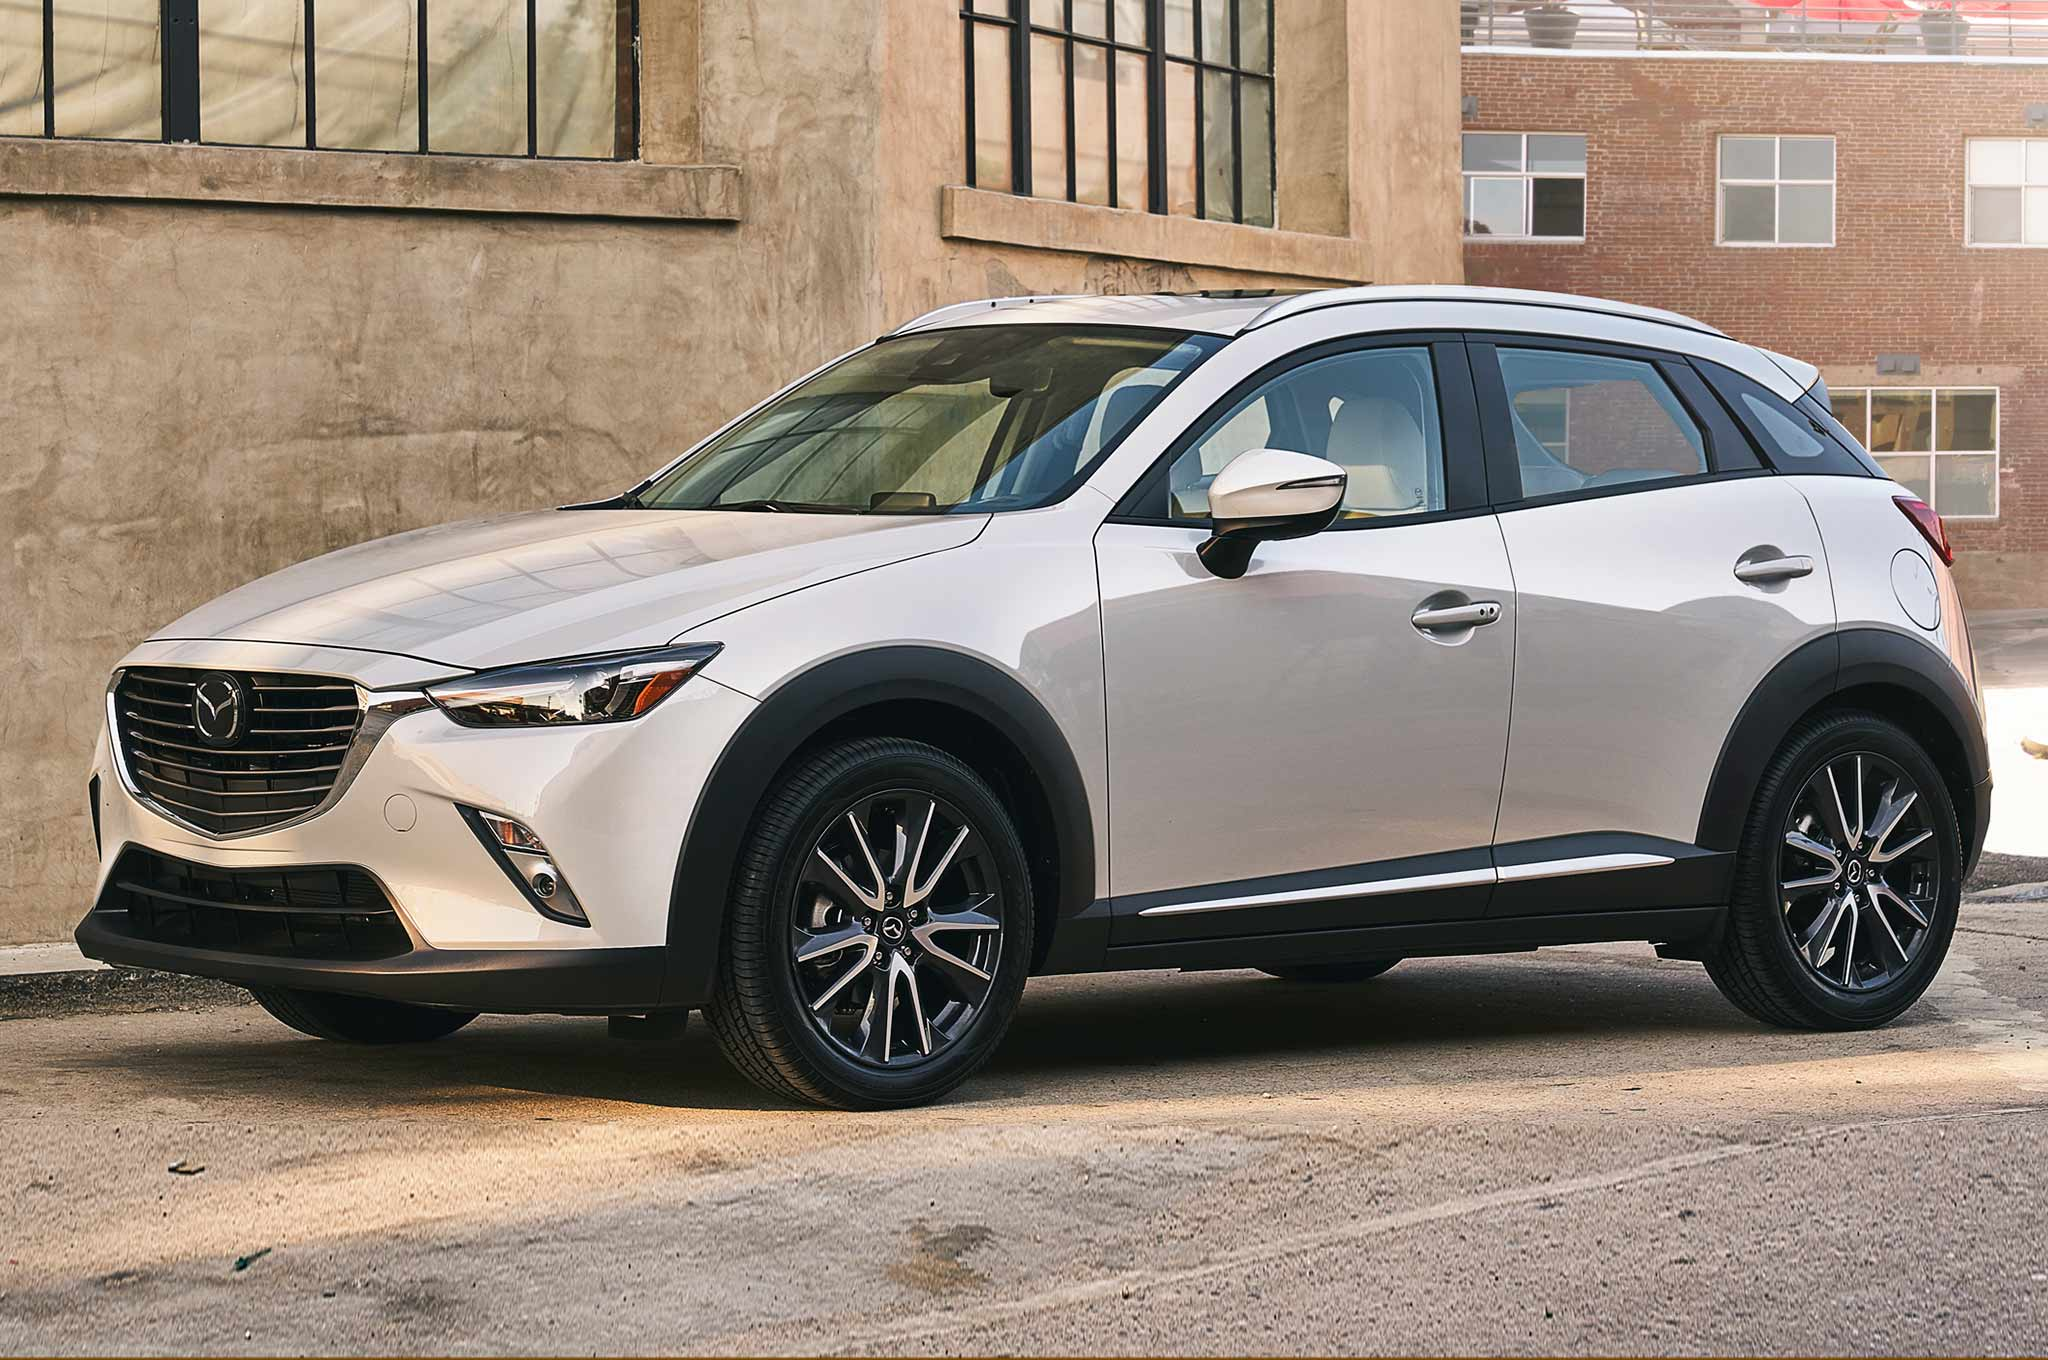 2018MazdaCX3-CutterAutoGroupHaawaii